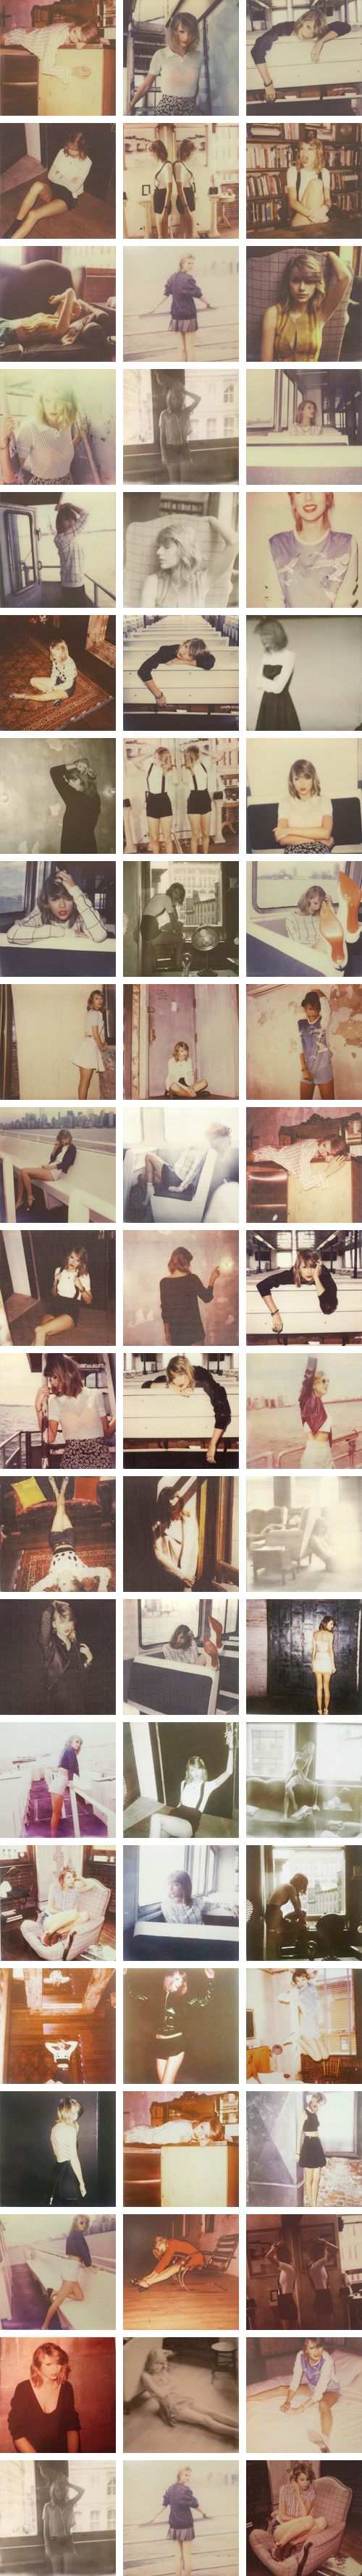 All the poloraids of Taylor swift!